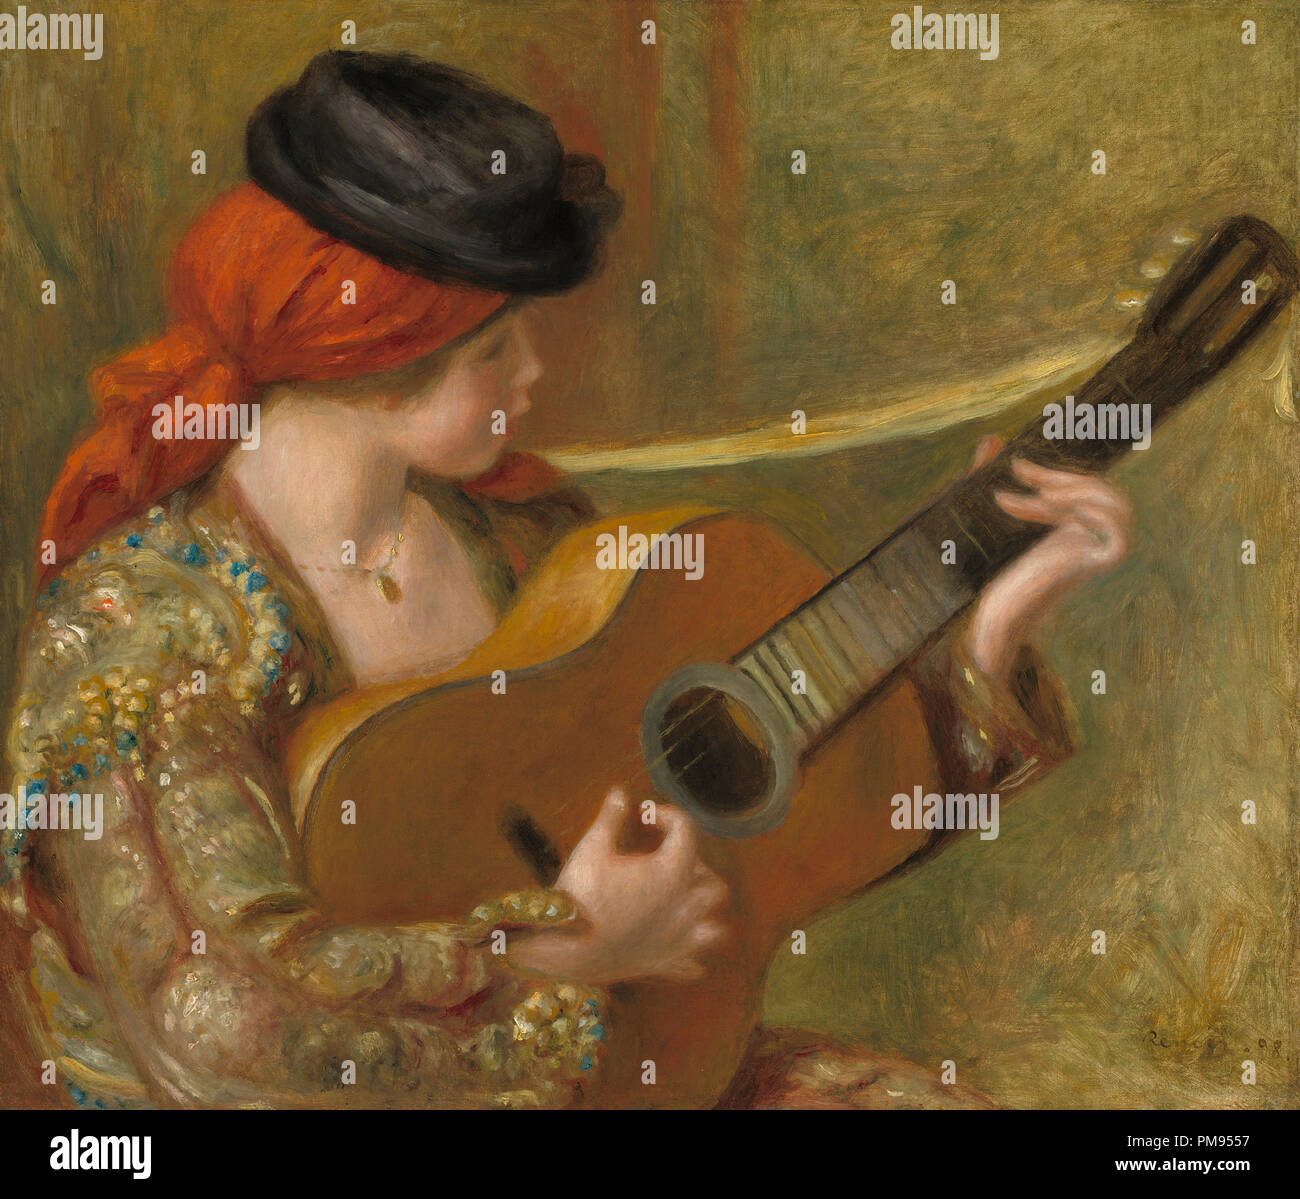 Young Spanish Woman with a Guitar. Dated: 1898. Dimensions: overall: 55.6 x 65.2 cm (21 7/8 x 25 11/16 in.)  framed: 81.9 x 92.1 x 10.1 cm (32 1/4 x 36 1/4 x 4 in.). Medium: oil on canvas. Museum: National Gallery of Art, Washington DC. Author: AUGUSTE RENOIR. - Stock Image